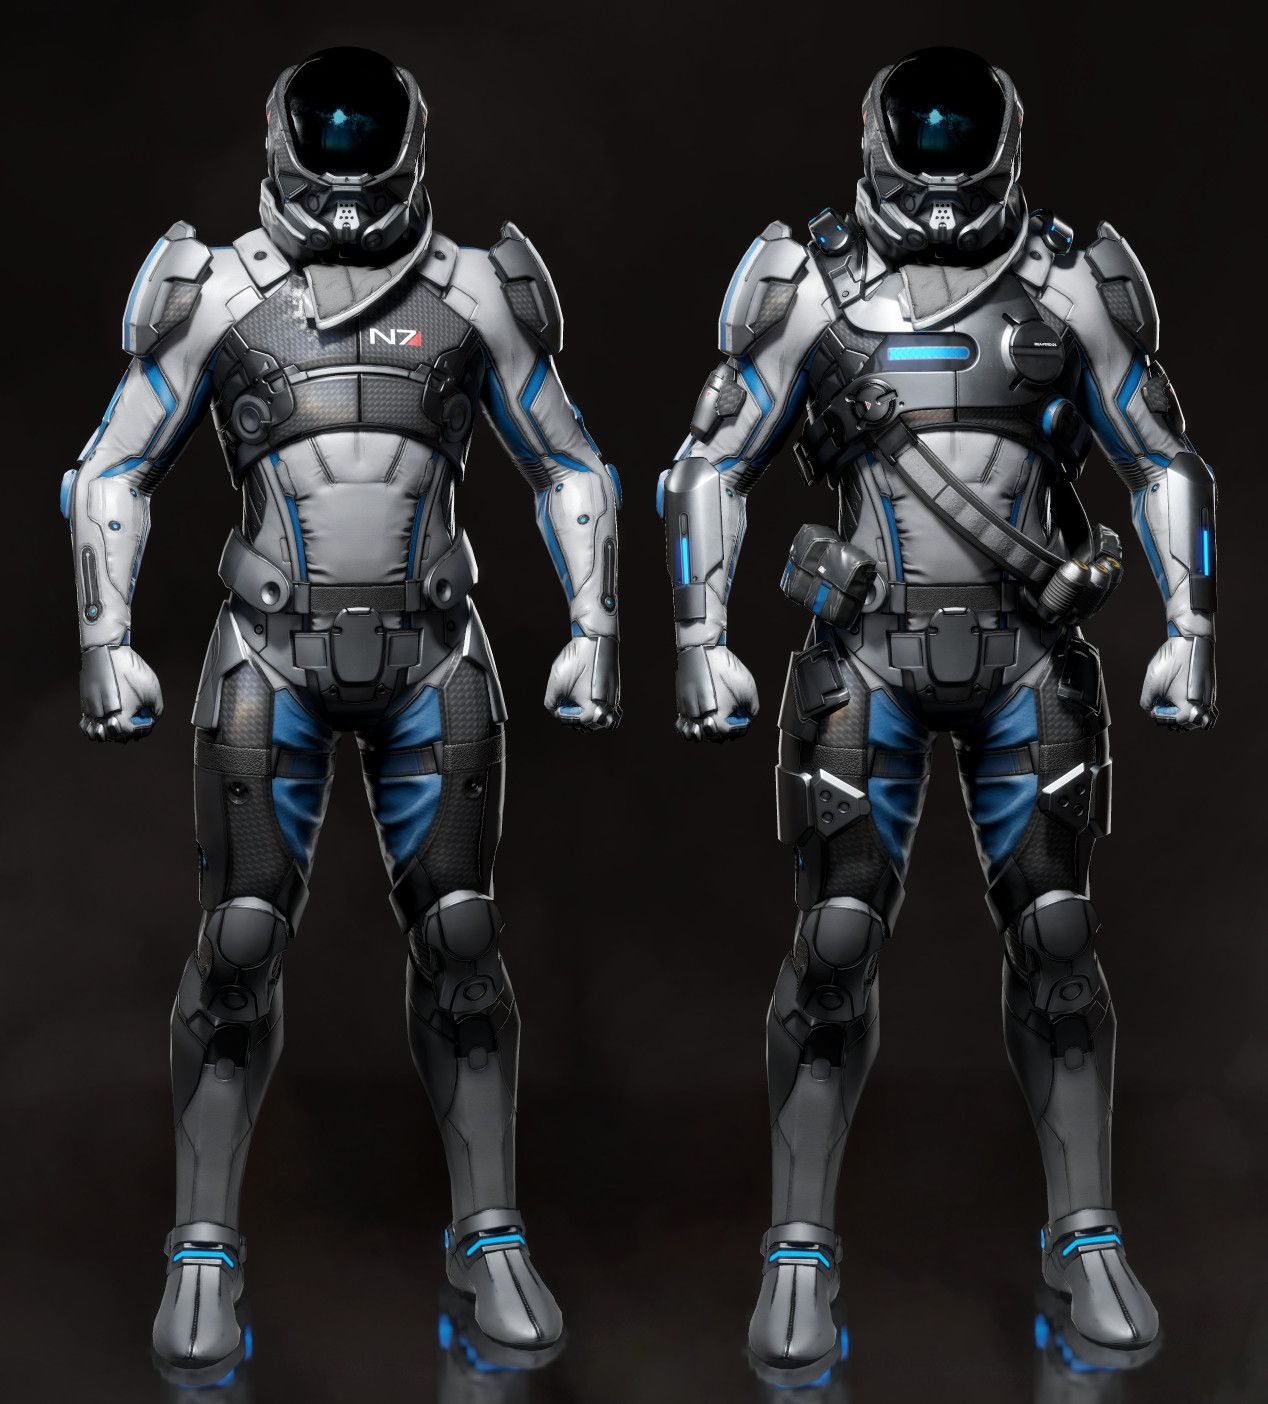 ArtStation - Mass Effect   Andromeda Fan Art, Lee Young Chul   Mechs ... 3a7bbe43be